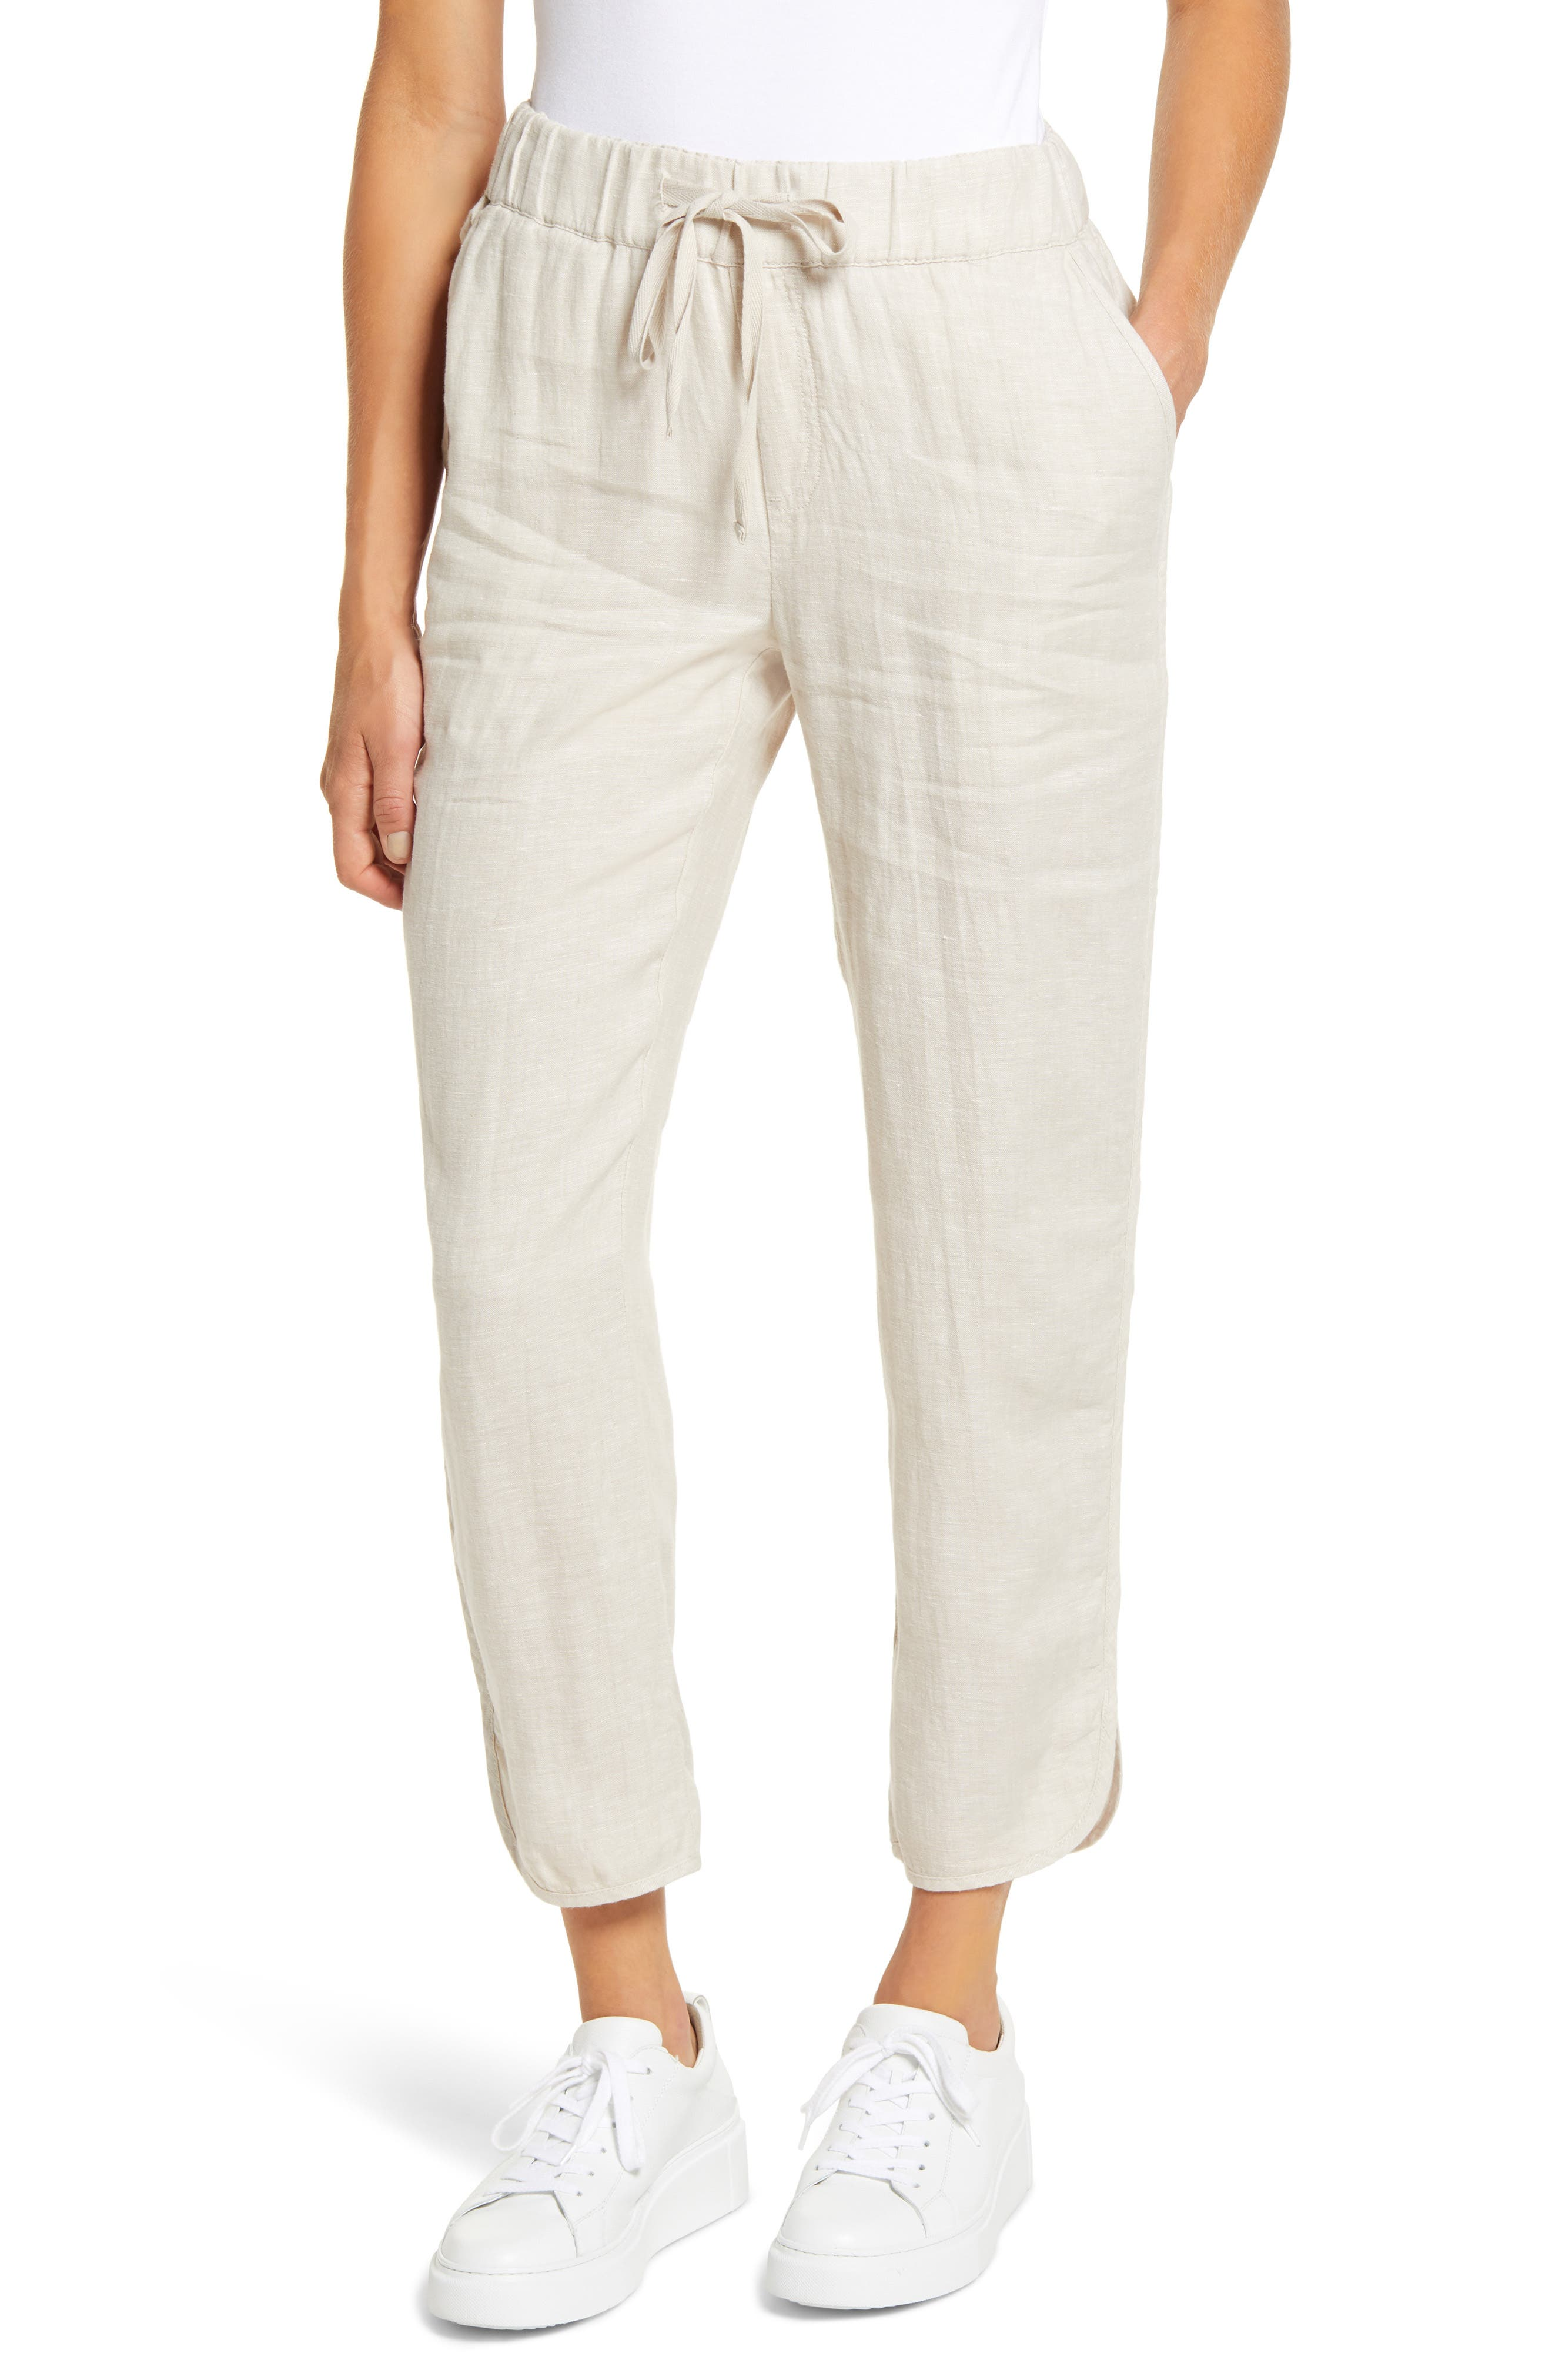 These lightweight linen trousers are fashioned with a comfy drawstring waist, handy pockets and flowy split cuffs with smooth binding. Style Name: Caslon Drawstring Linen Jogger Pants. Style Number: 5999912. Available in stores.